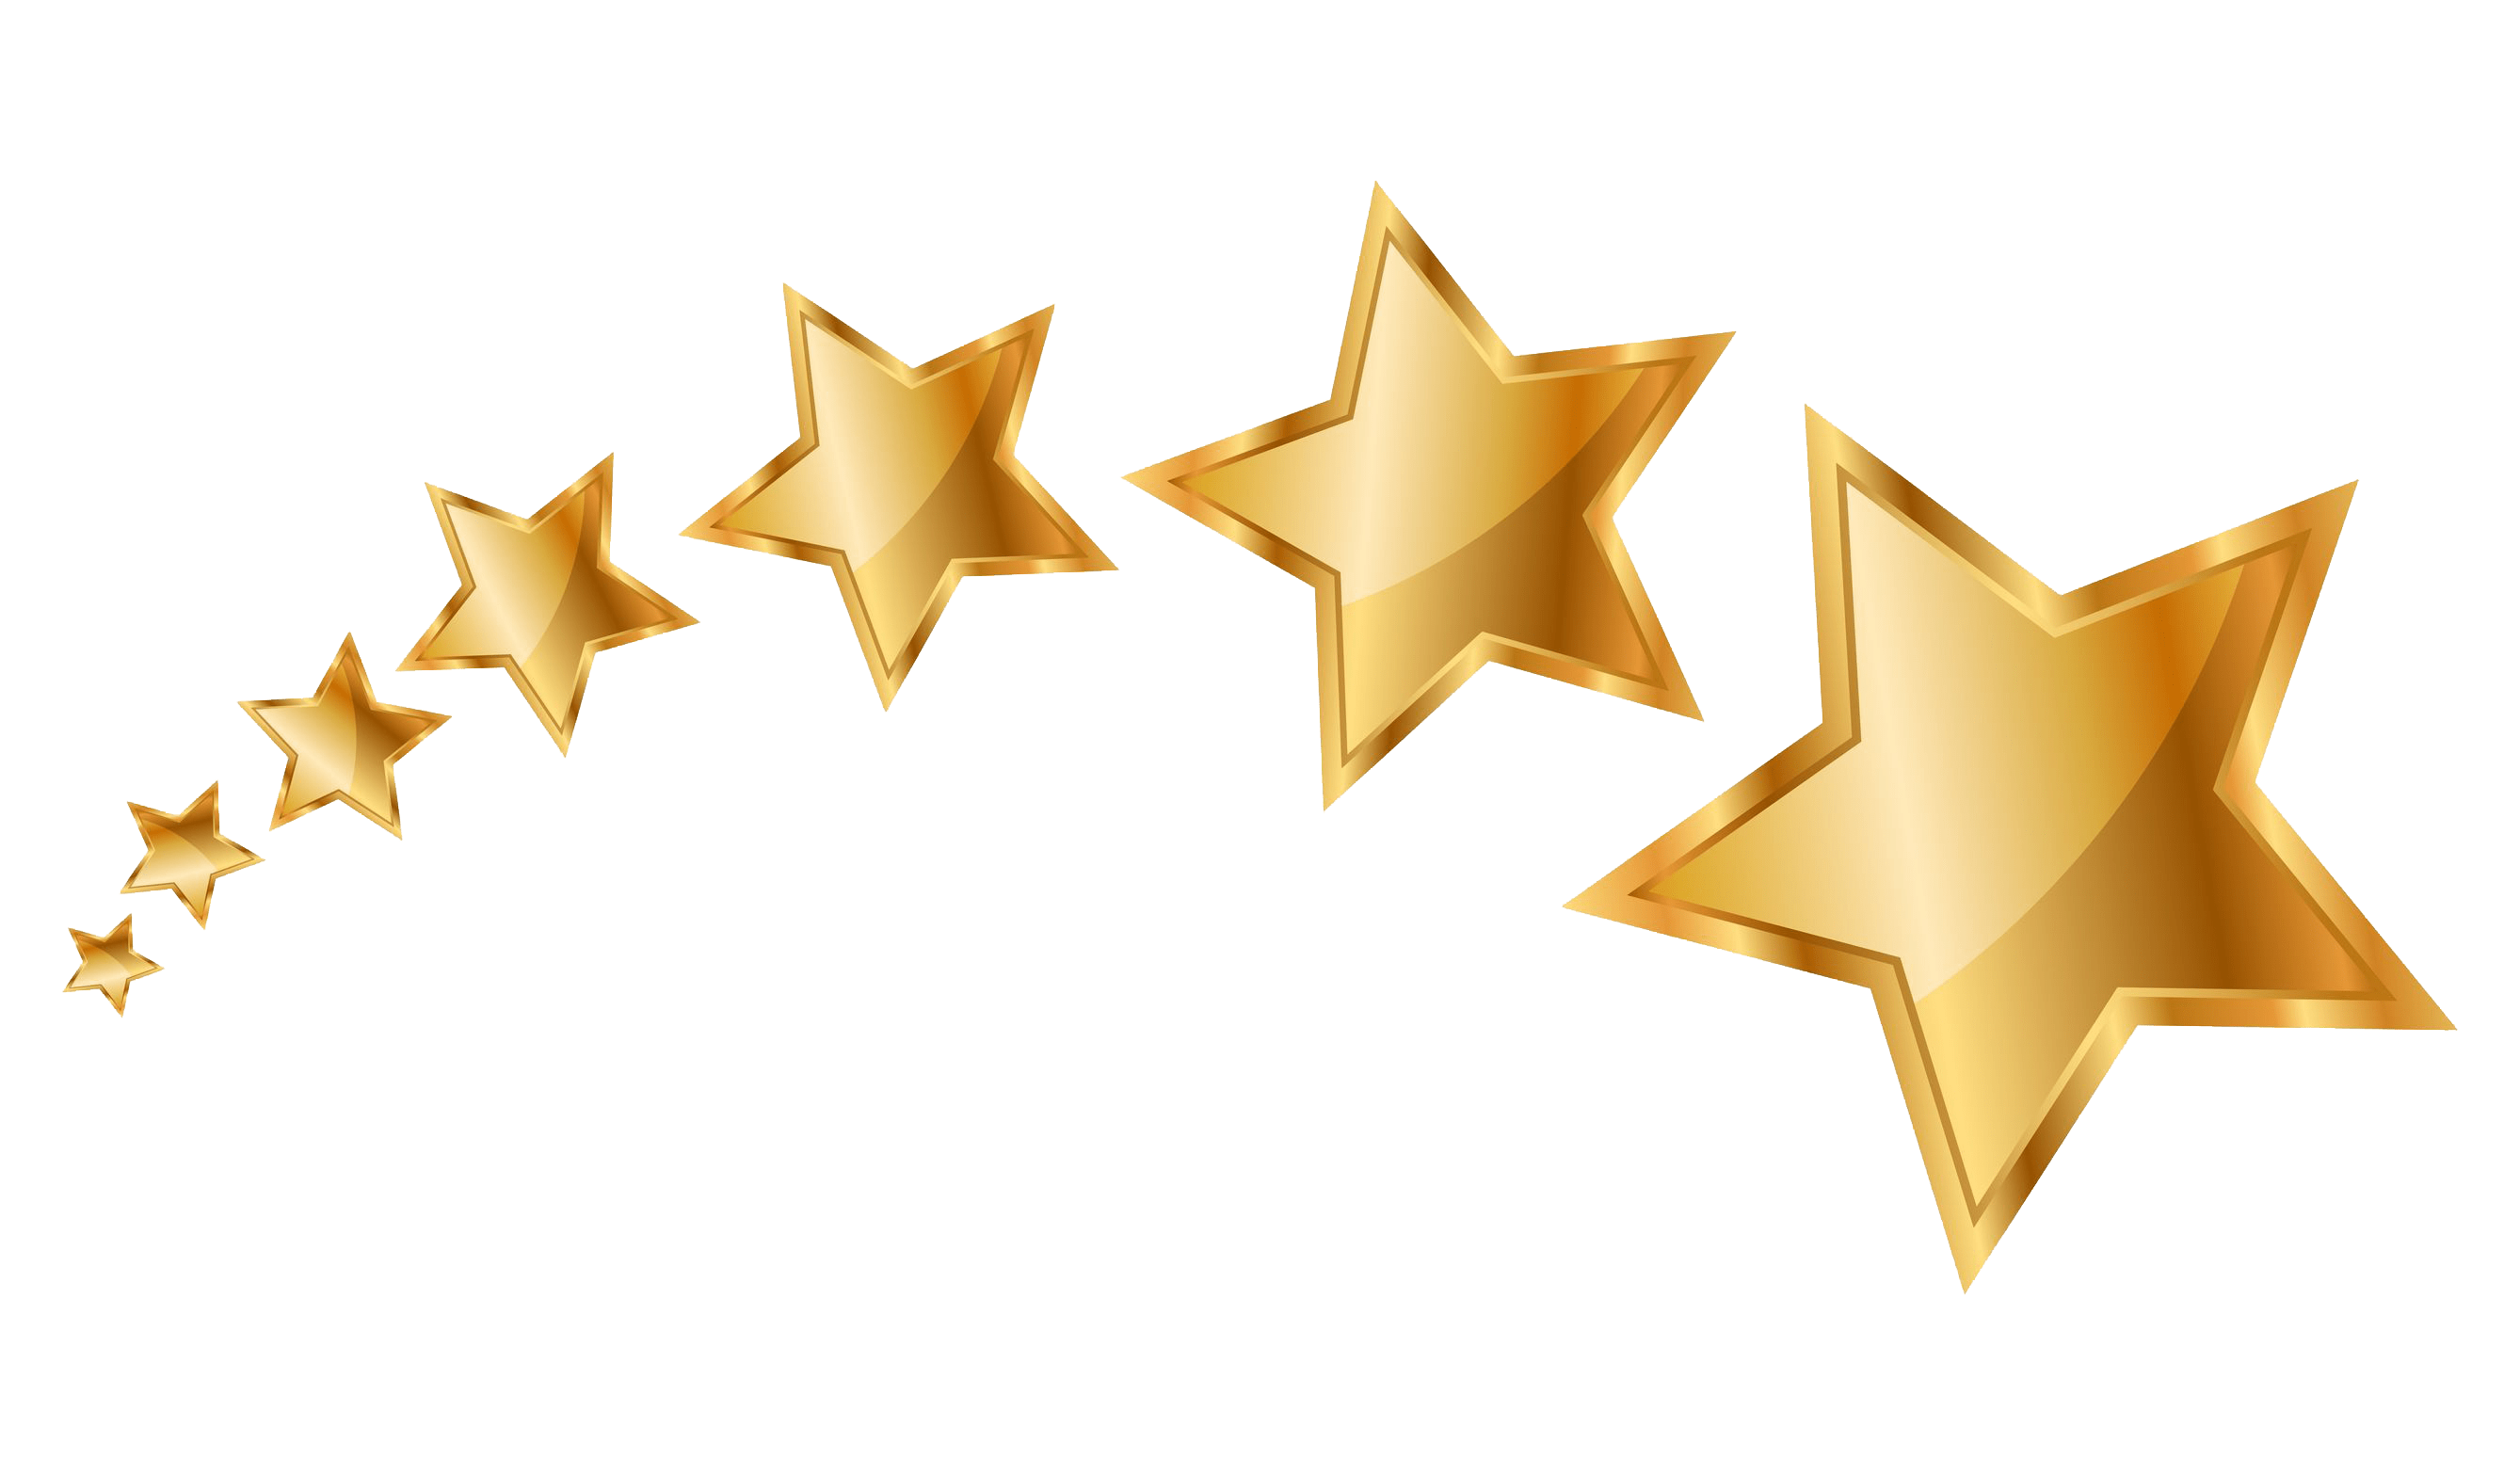 Gold star clipart png picture transparent stock 5:5 Sparkling Gold Stars Rating transparent PNG - StickPNG picture transparent stock